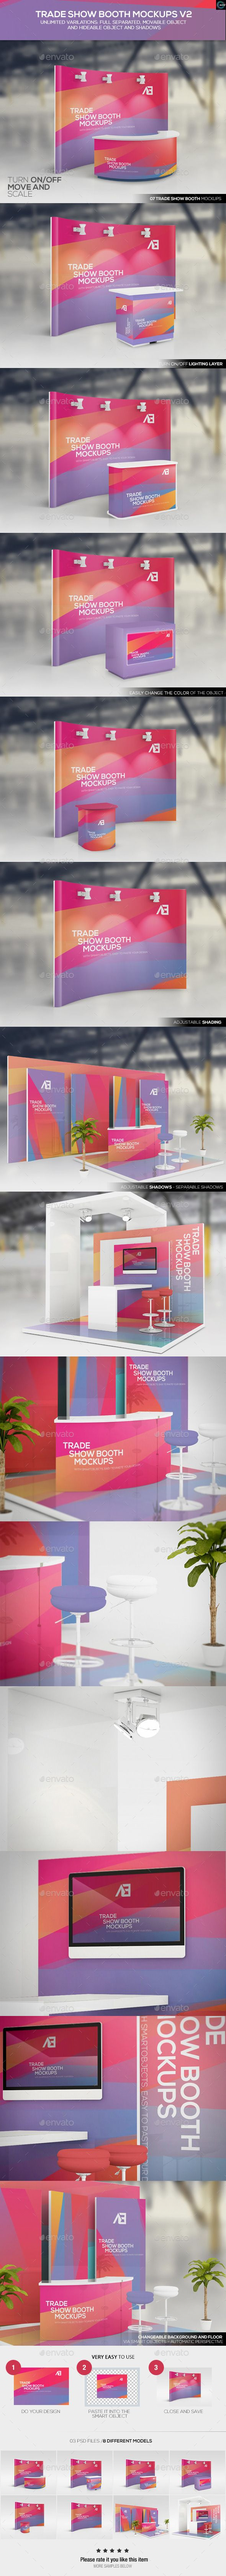 Trade Show Booth Mockups. Download: http://graphicriver.net/item/trade-show-booth-mockups-v2/11170591?ref=ksioks